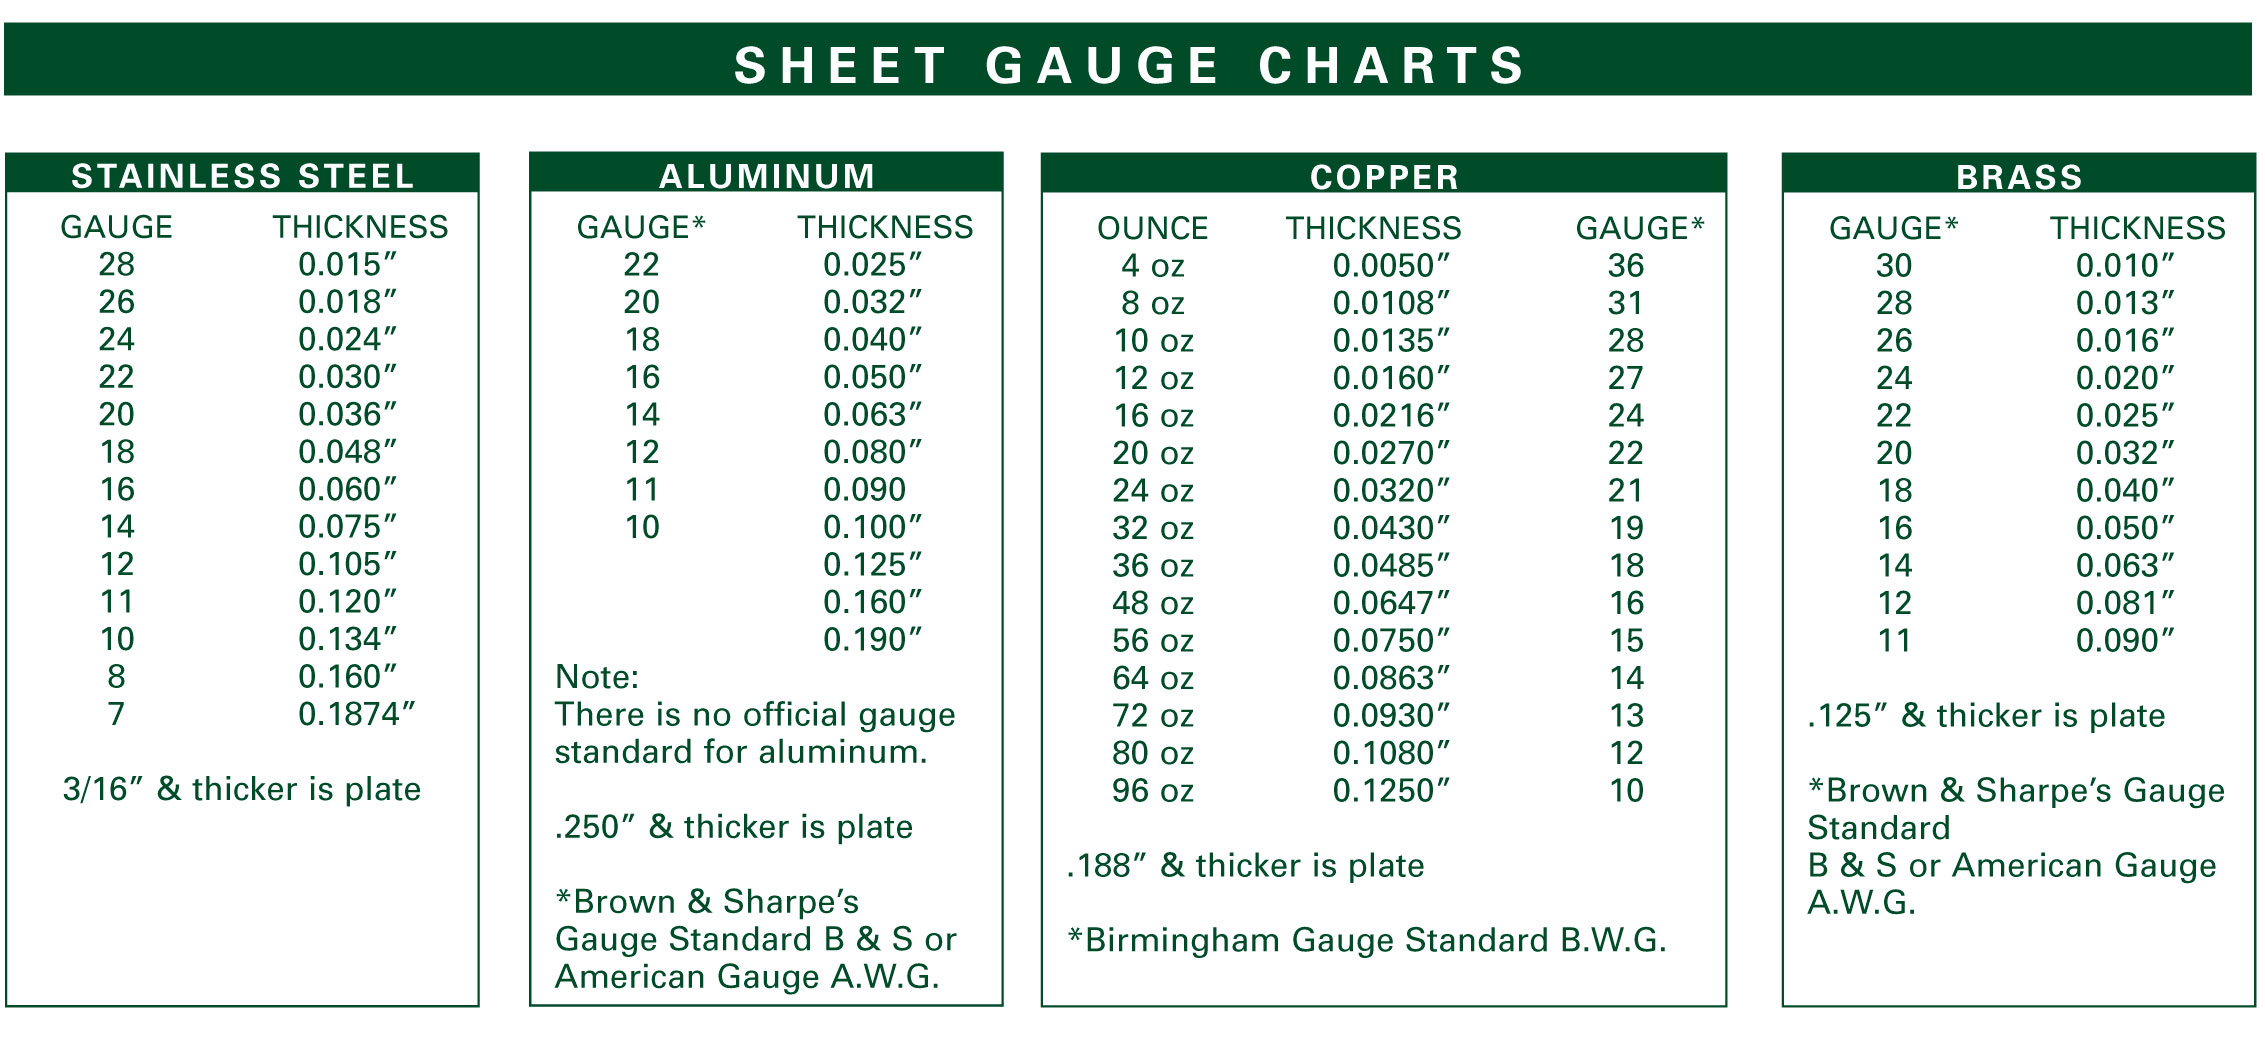 Sheet gauge seatledavidjoel sheet gauge greentooth Gallery